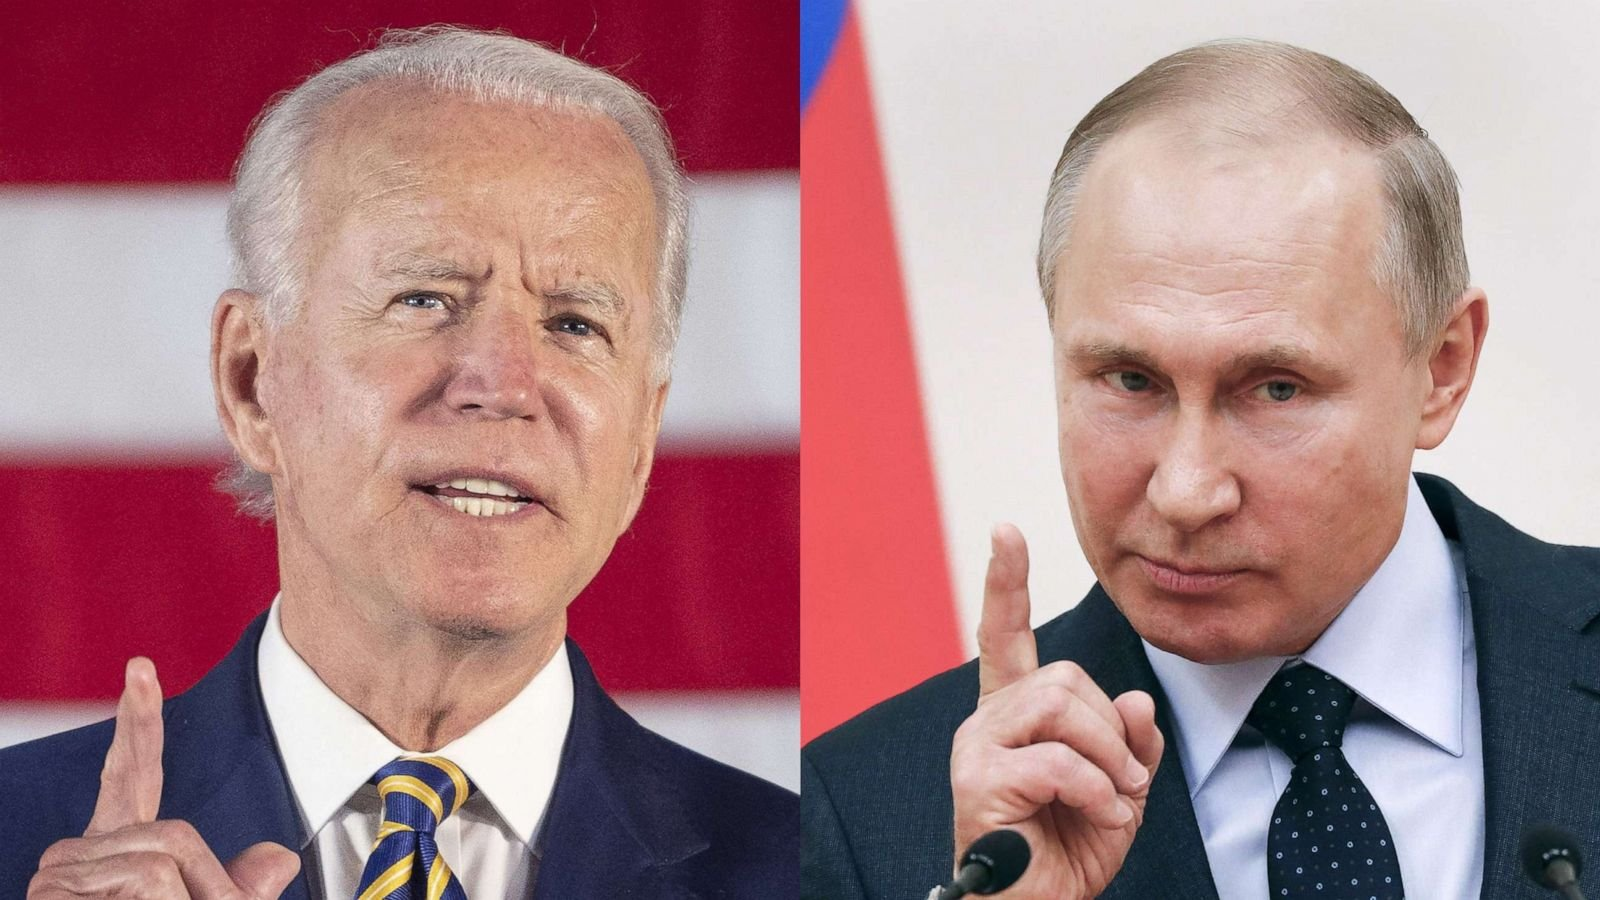 Biden to hold high-stakes summit with Putin - cover